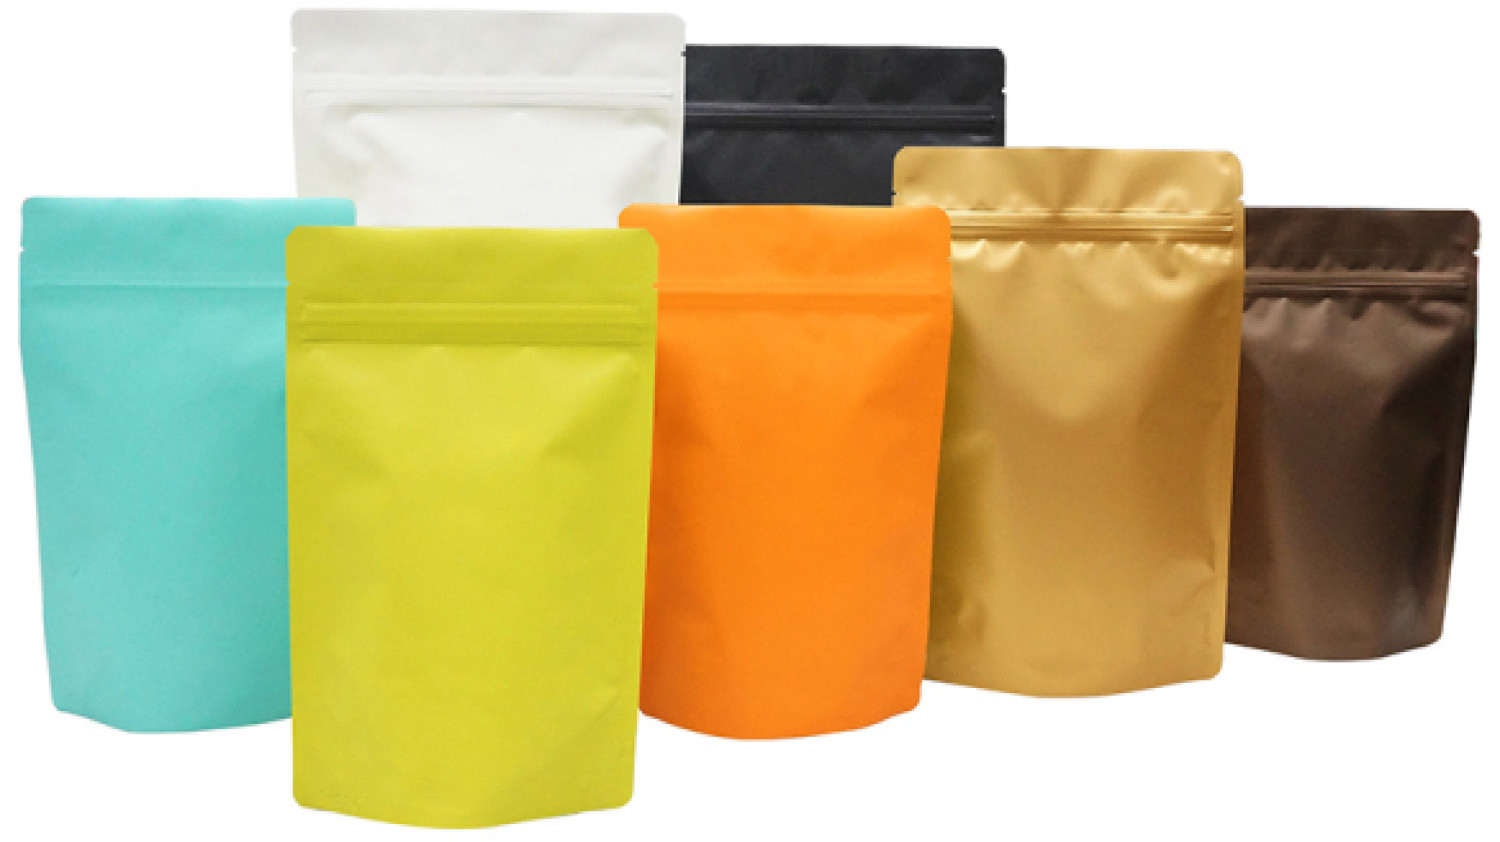 Standup Pouches Market   2020 Research during the Ongoing COVID-19 Pandemic, Growth and Research Methodology by Forecast to 2026 Infographic